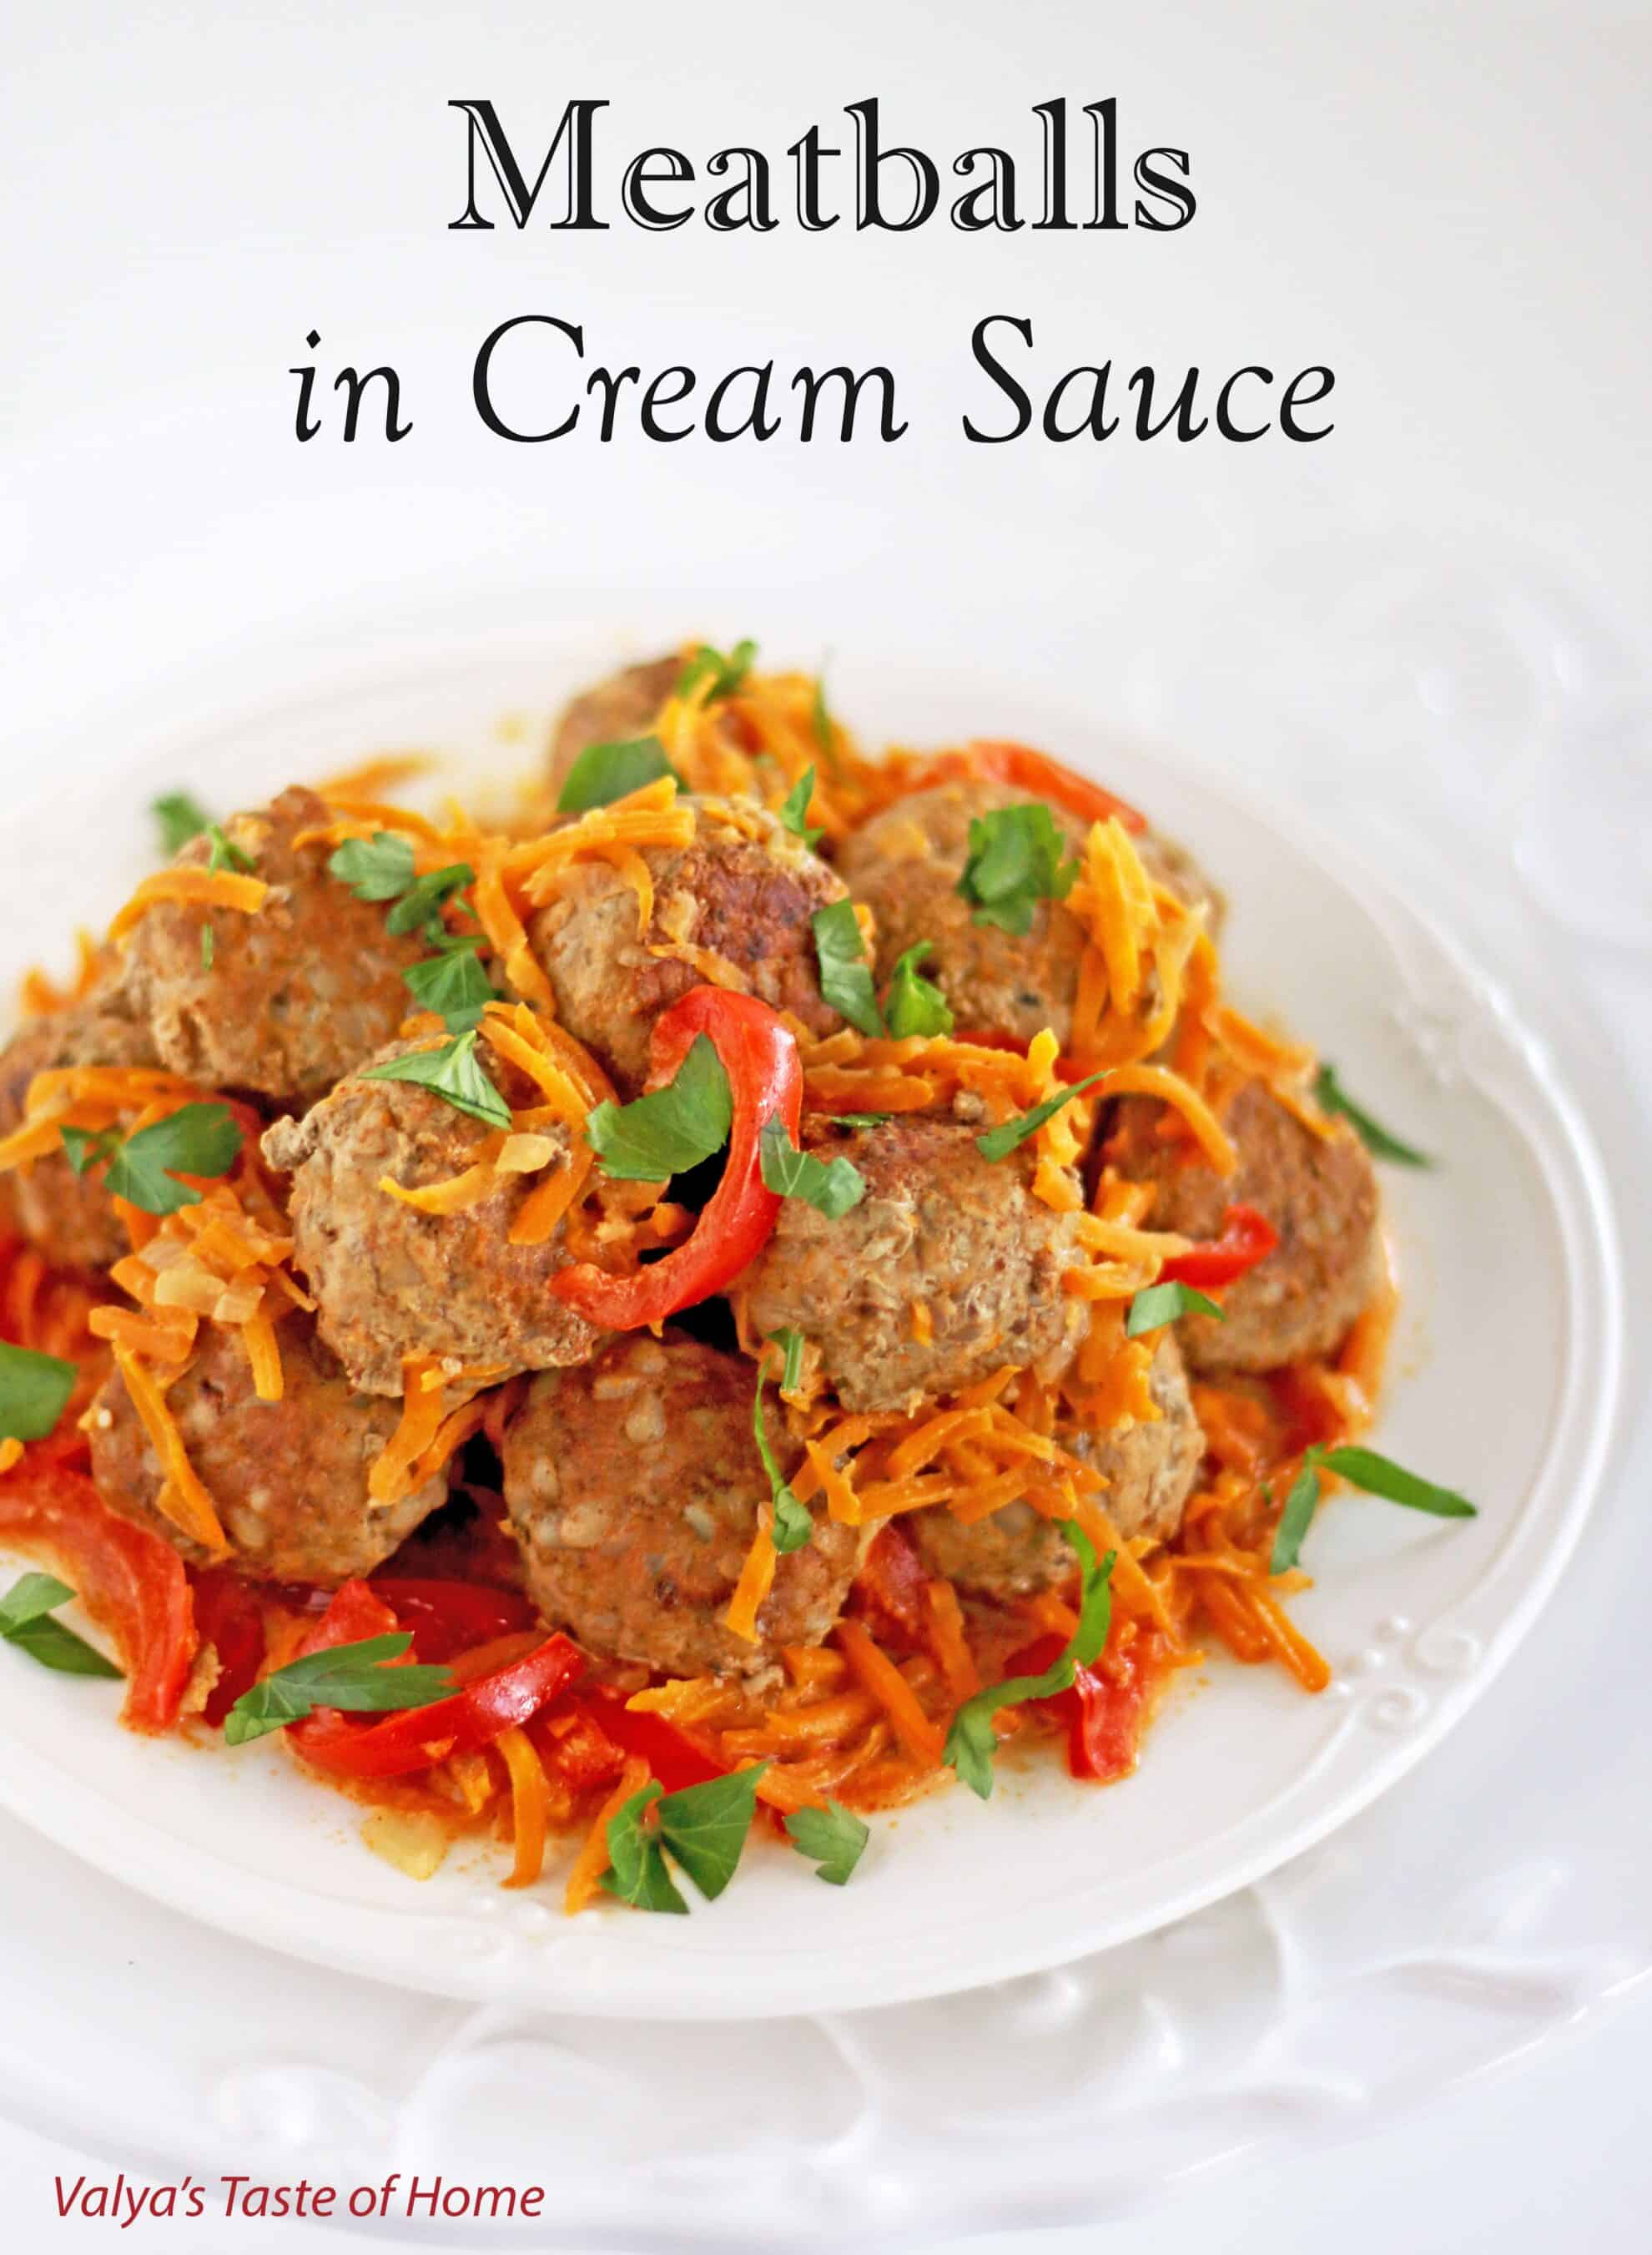 Buckwheat Meatballs in Cream Sauce